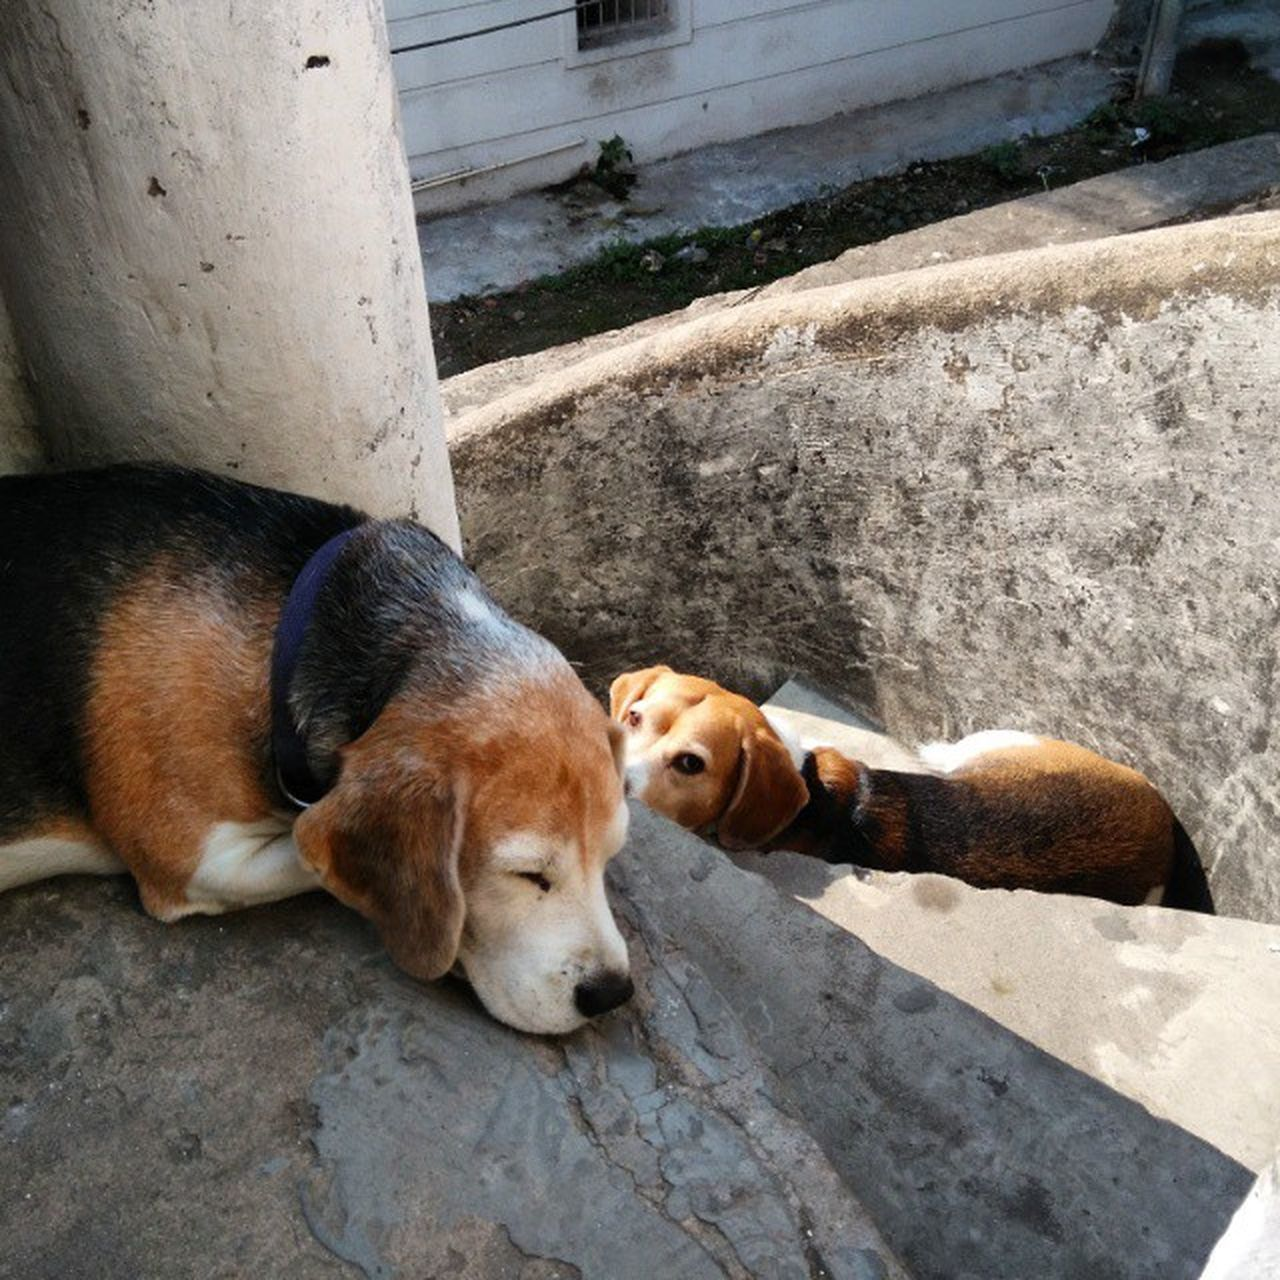 animal themes, mammal, domestic animals, high angle view, day, sleeping, dog, pets, no people, outdoors, relaxation, one animal